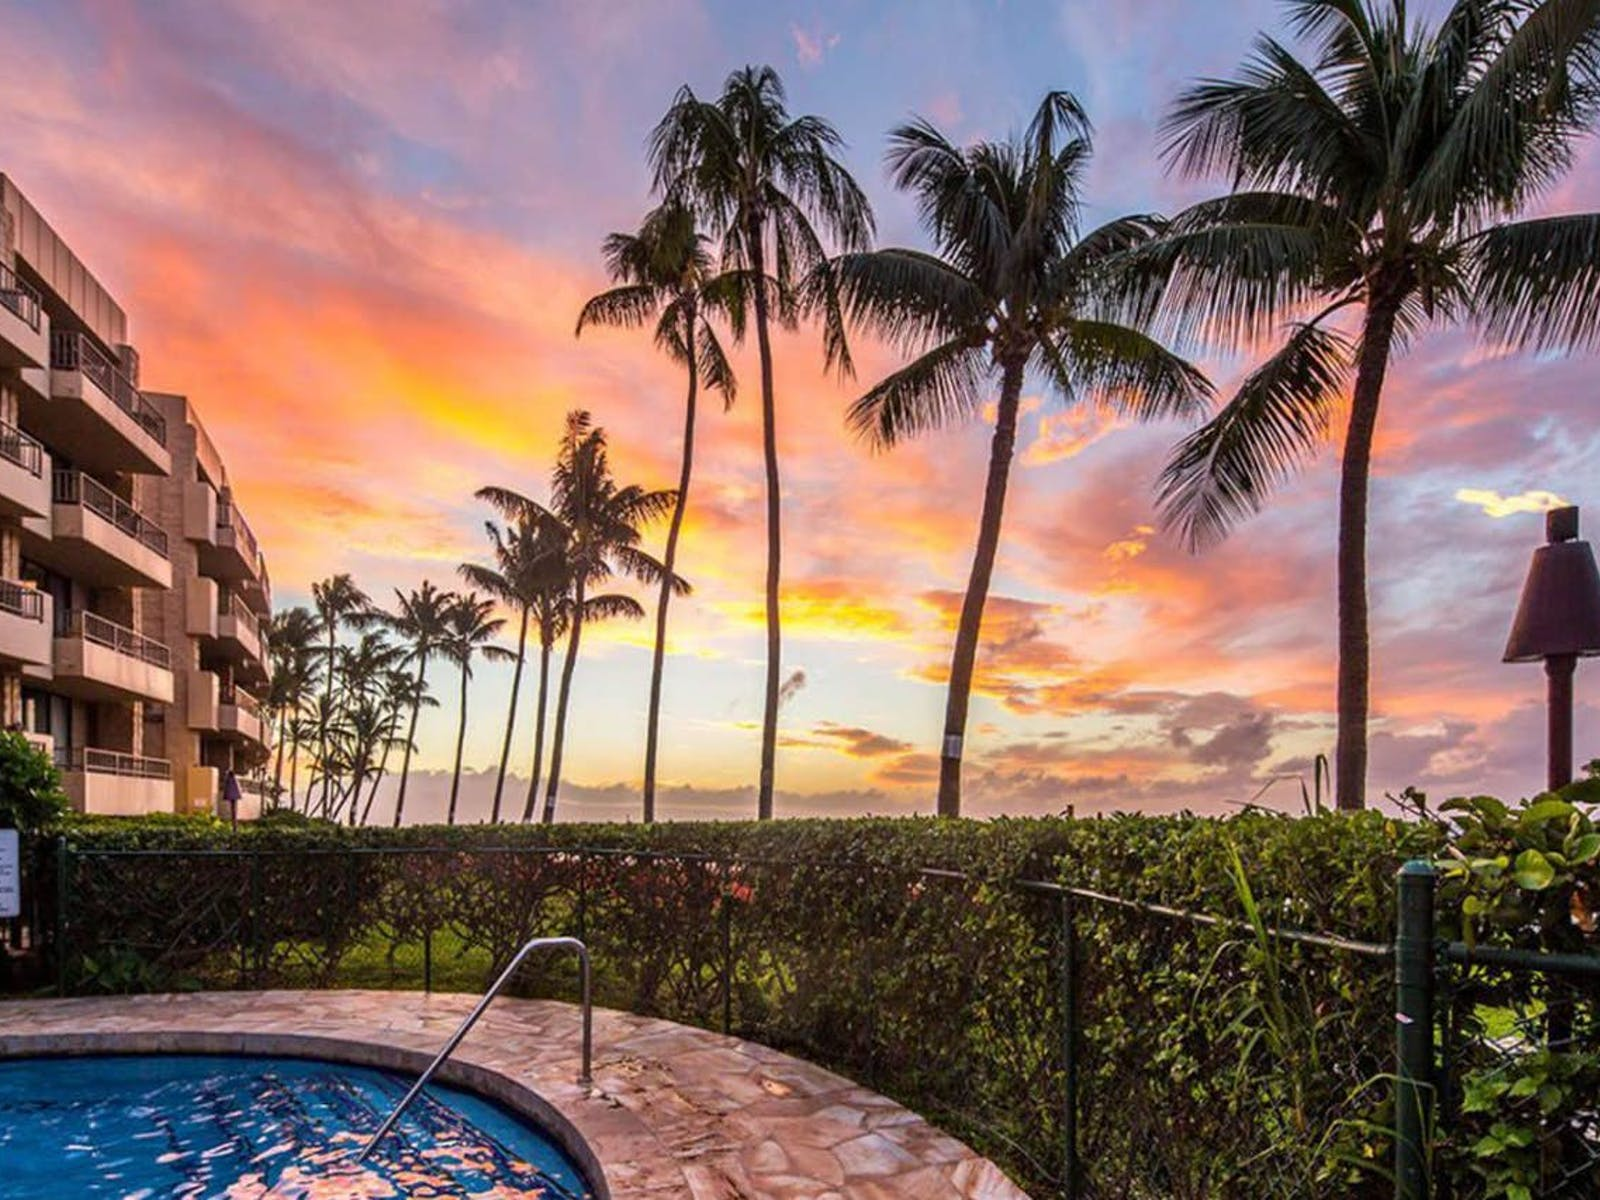 a sunset in maui that can be seen from a hot tub near the beach